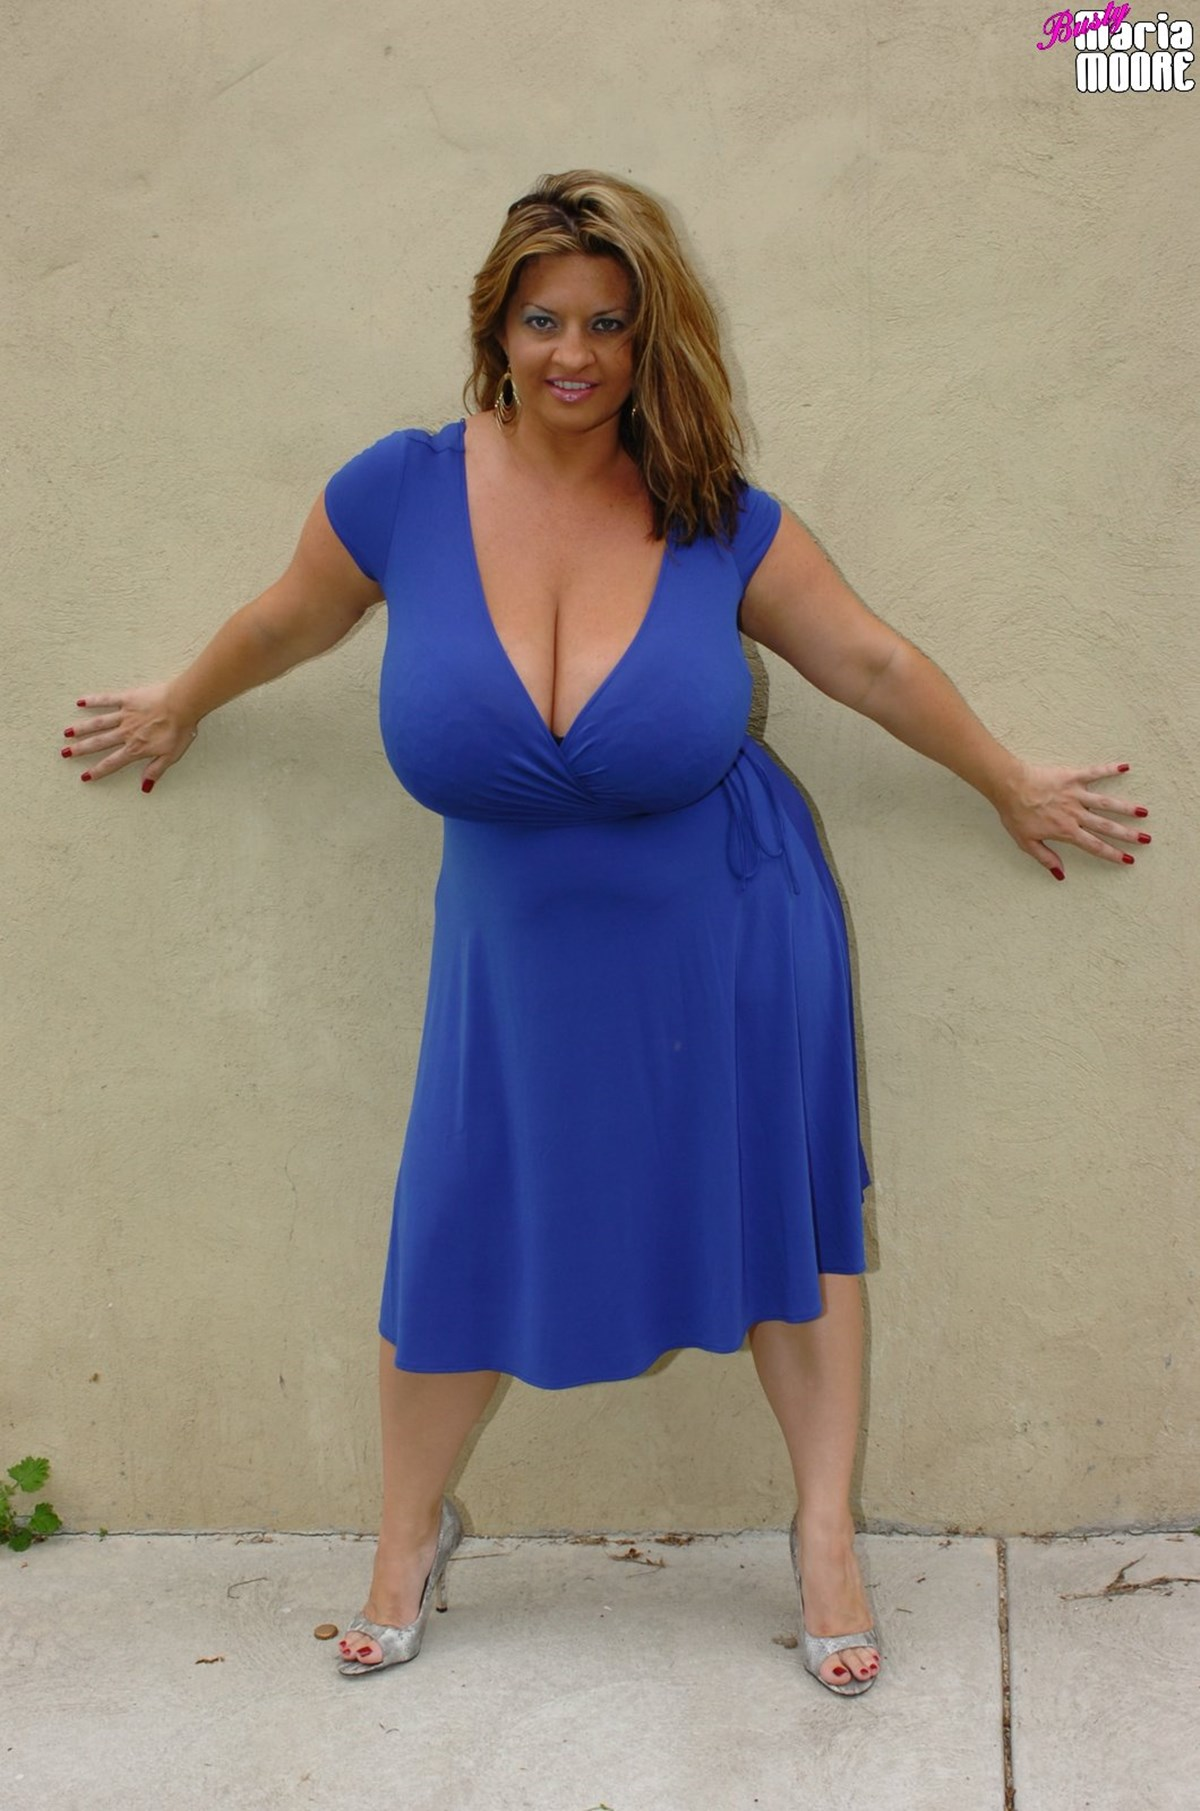 Like BIG TITTED, SEX CRAZED MILFS? JOIN the NEW BUSTYMARIAMORORE.COM ...